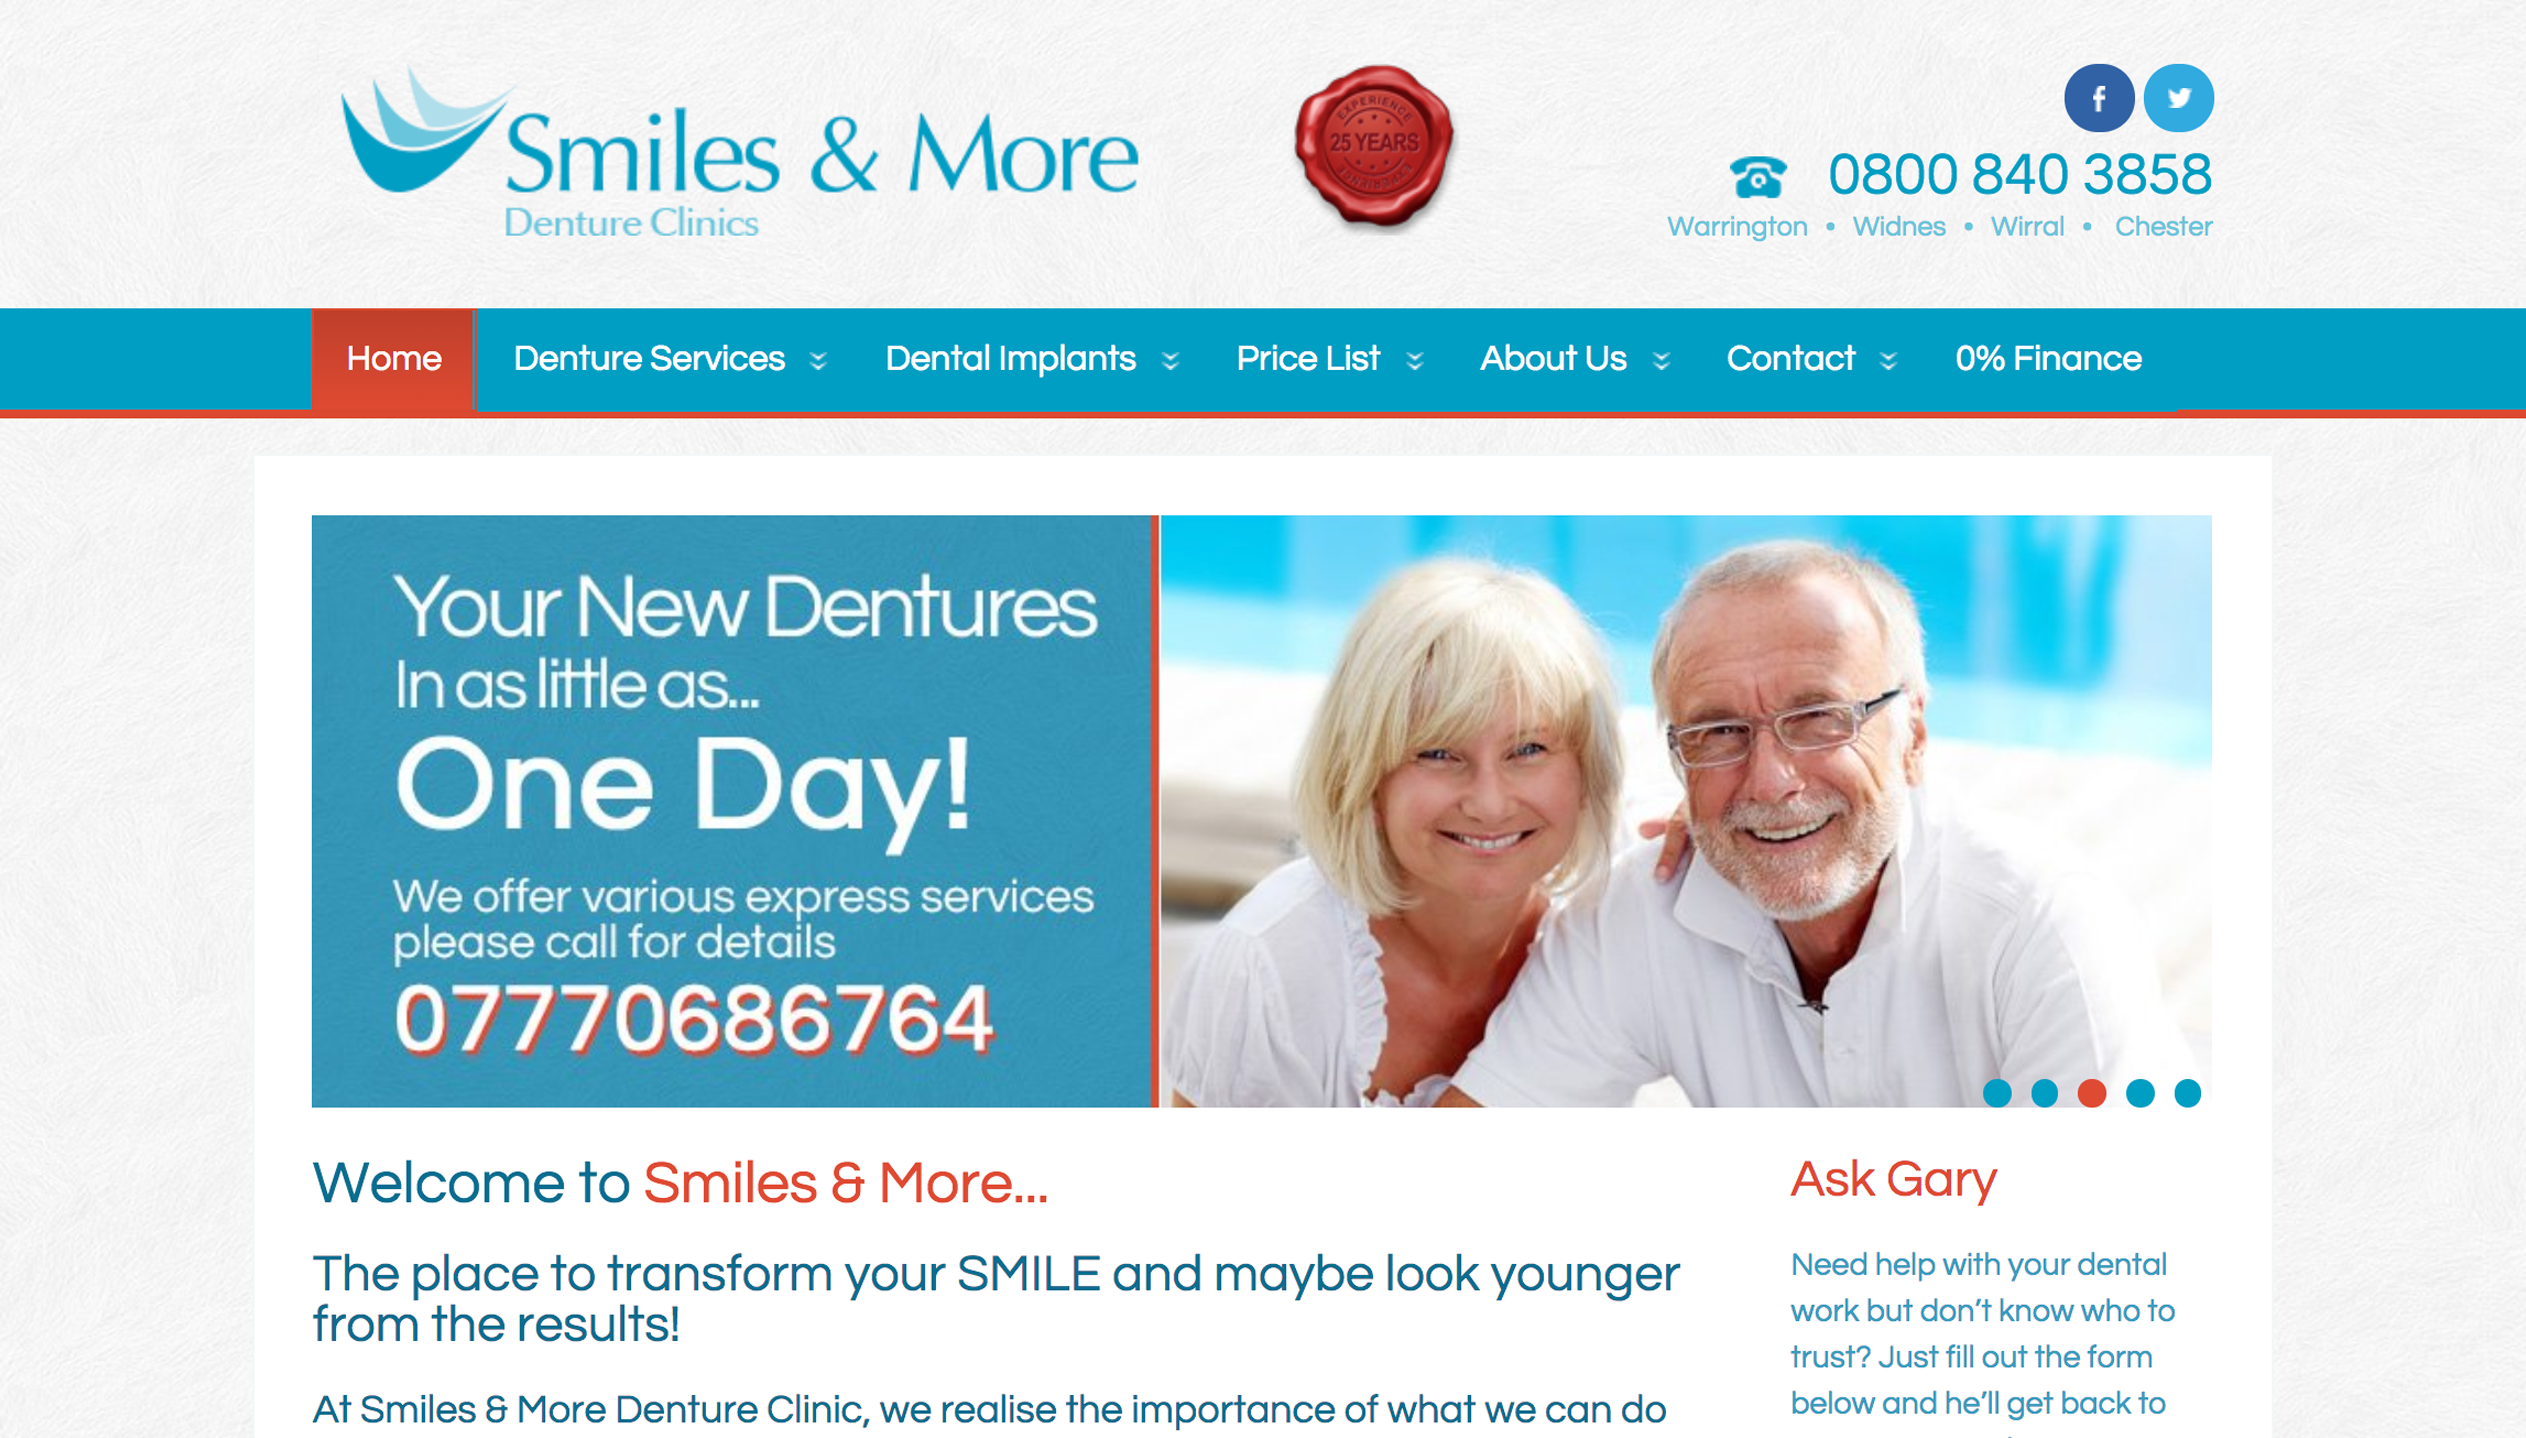 www.smilesandmore.co.uk